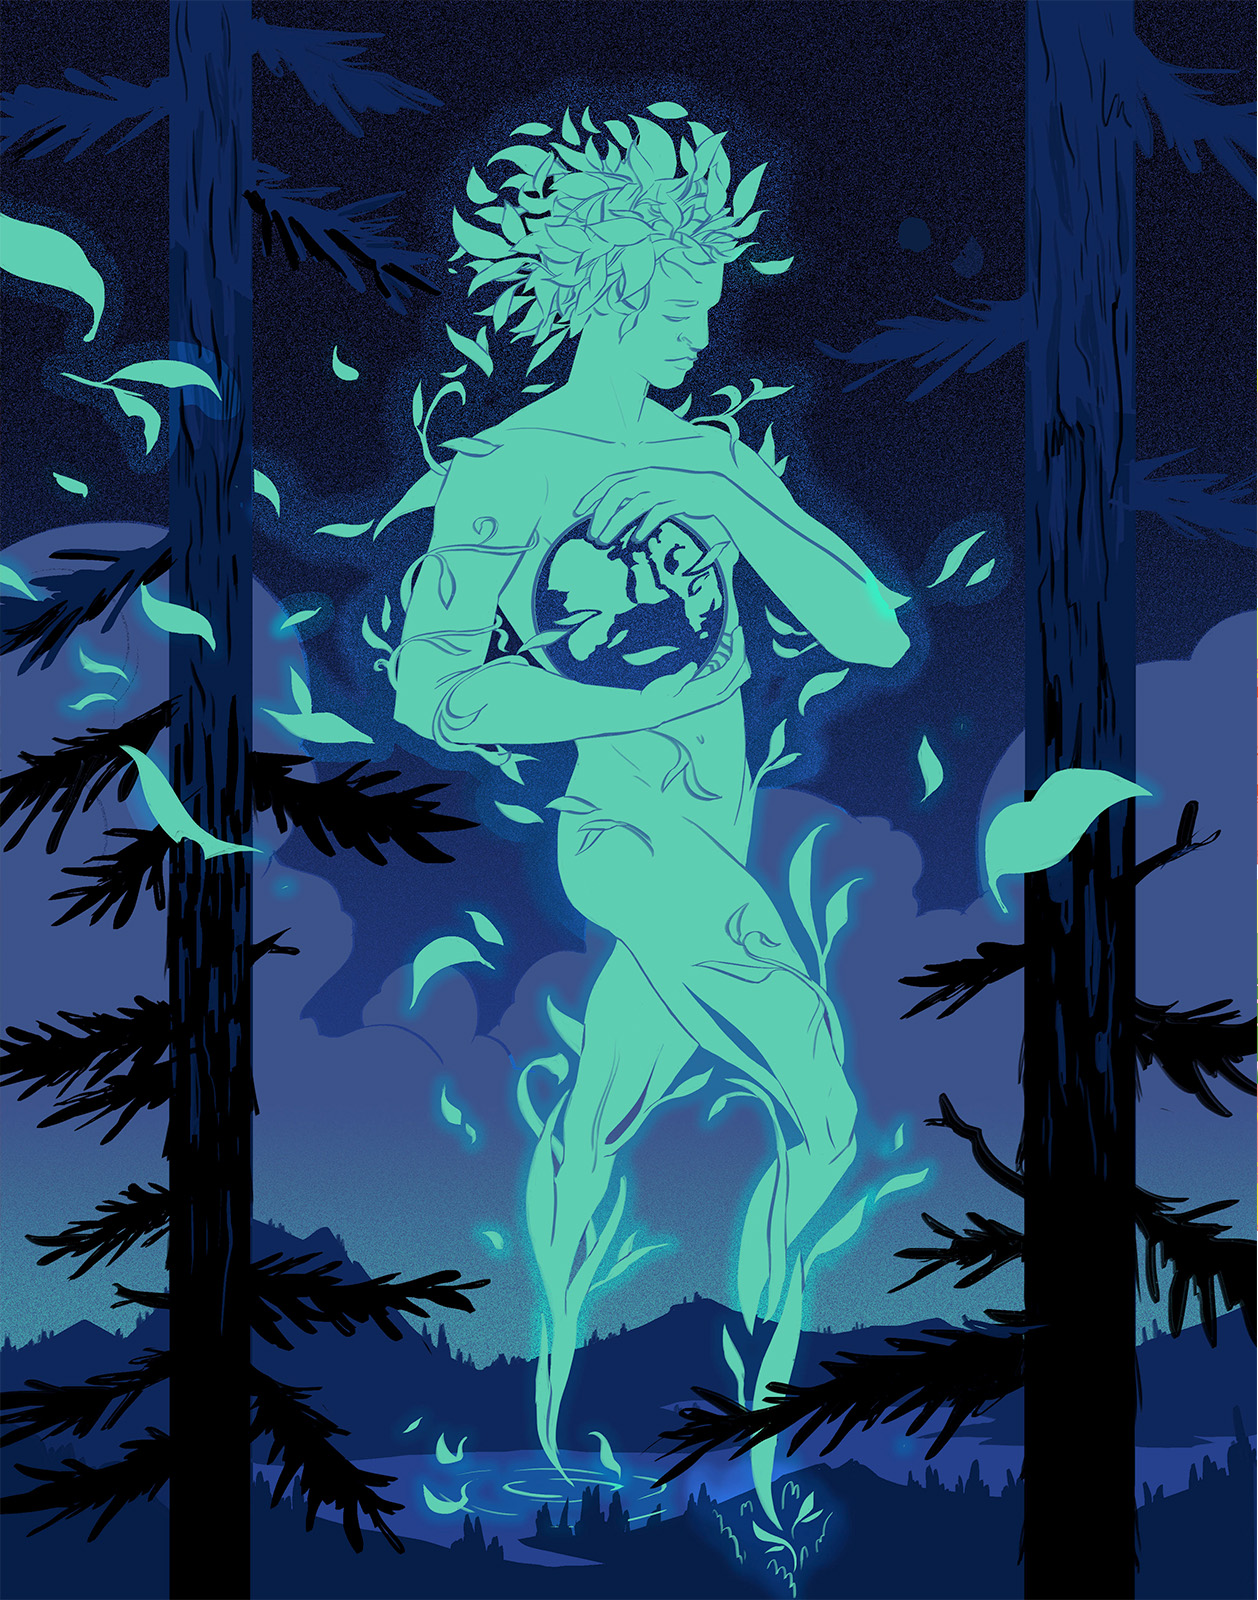 """Illustration for Brandon McWilliam's piece """"A case for the land and its stories"""" for Lucky Jefferson. A large figure formed from leaves cradles a globe. They are walking over a valley lake at night. The composition is framed between two pine trees."""